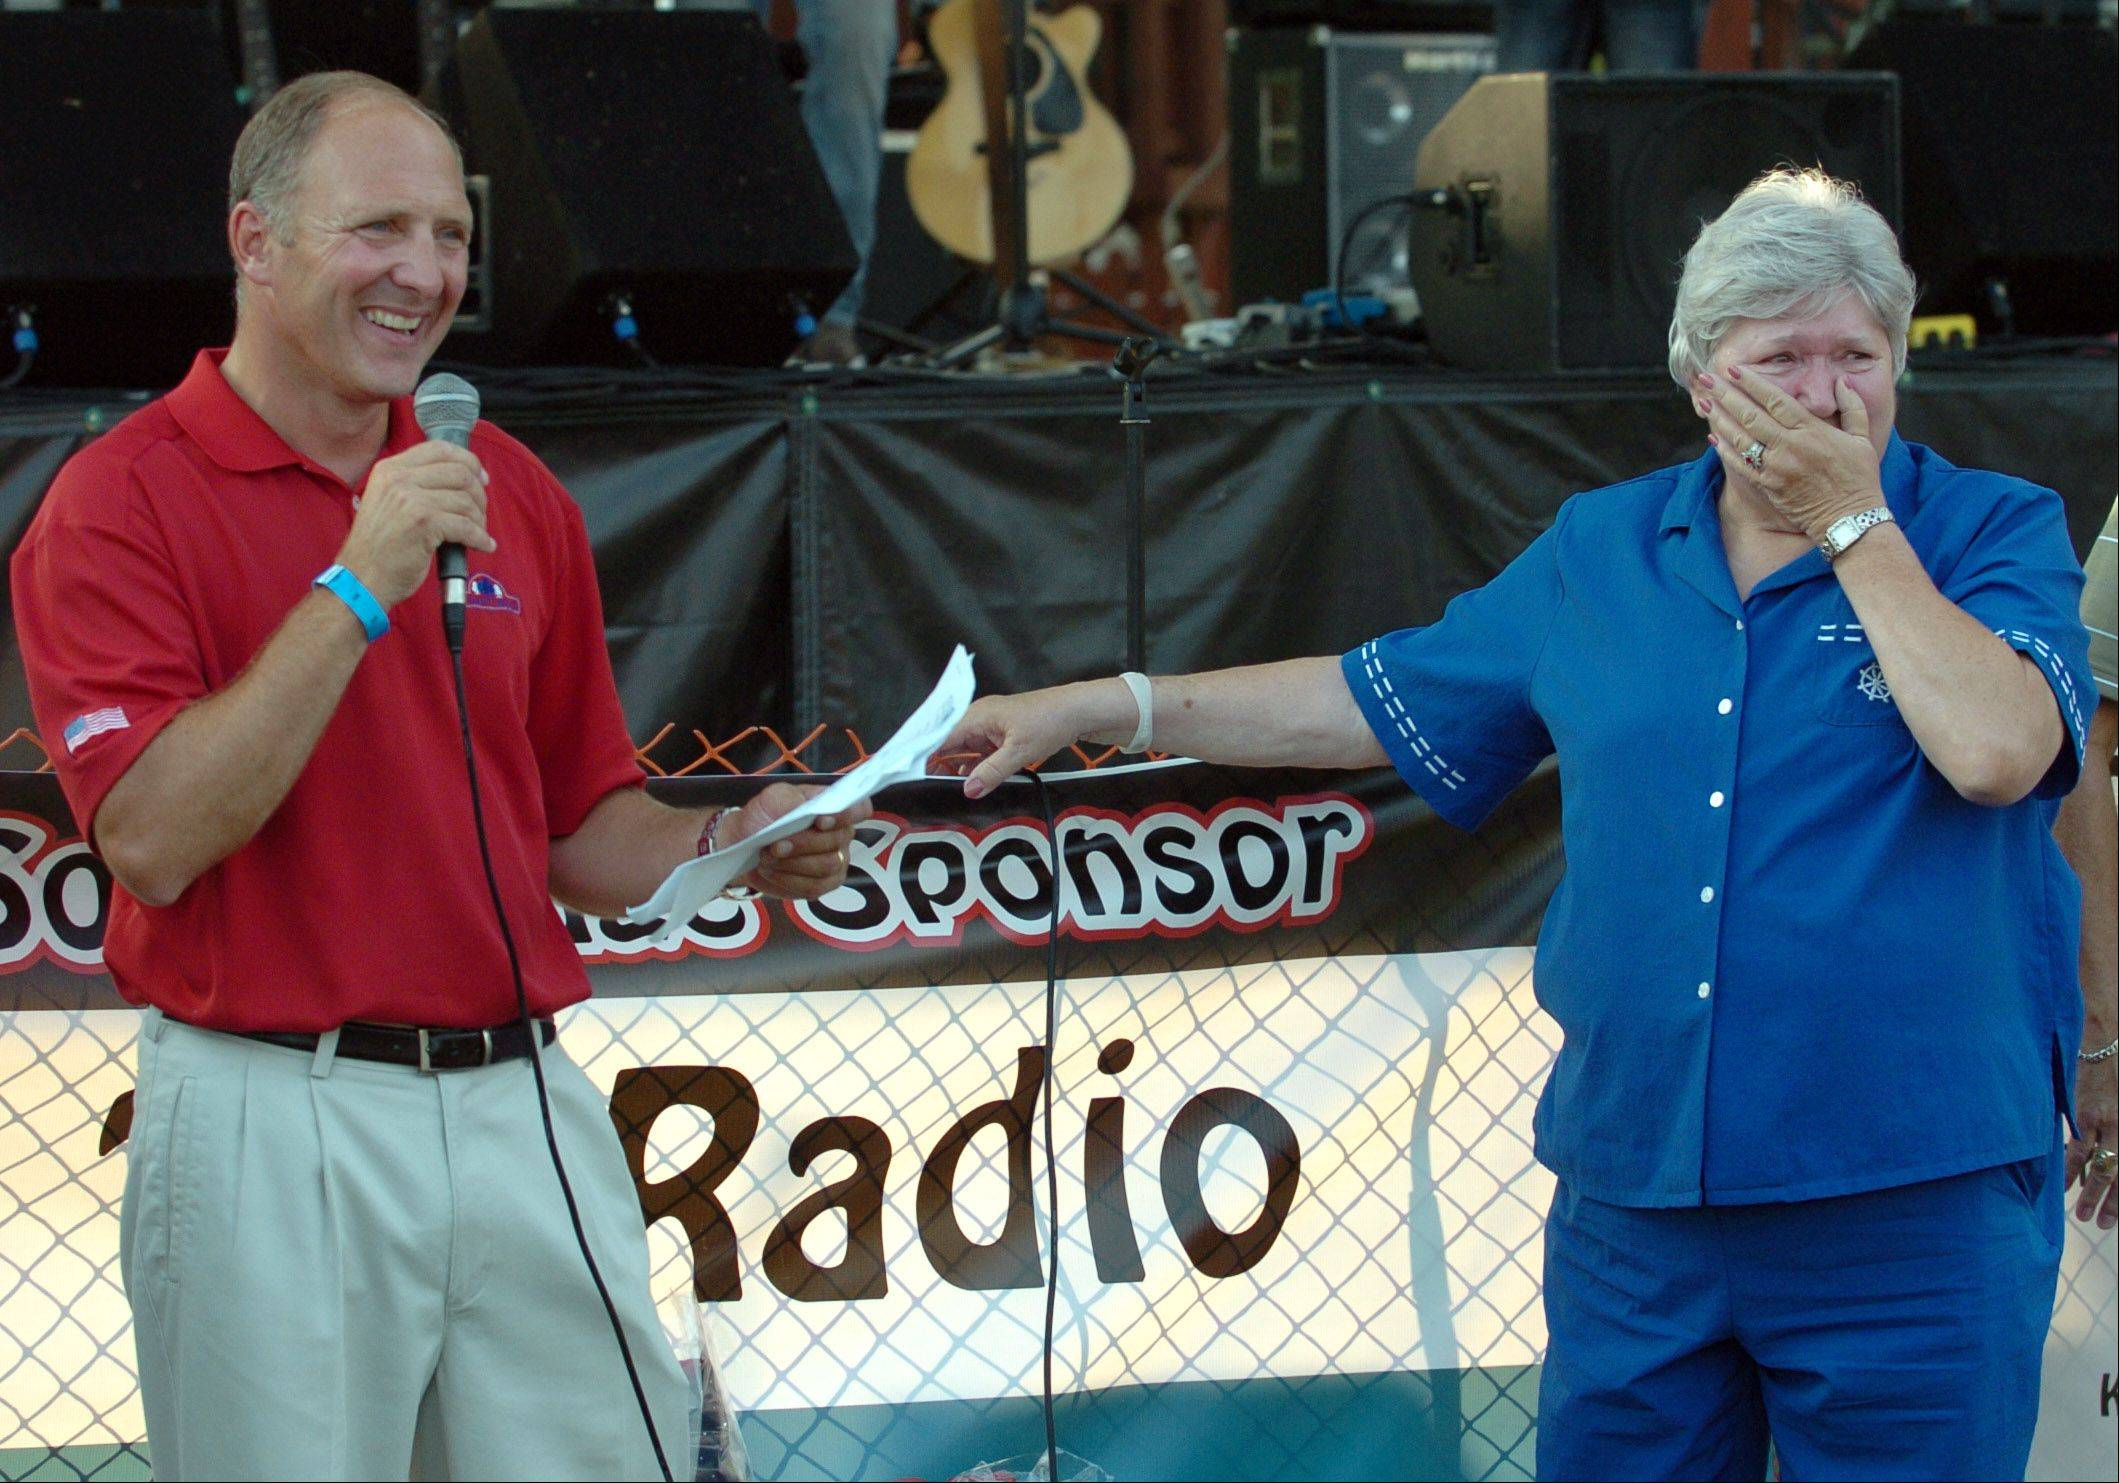 Kristin Ackmann/kackmann@dailyherald.com On behalf of the Village of Sugar Grove and the Sugar Grove Chamber of Commerce and Industry, village president Sean Michels(cq), named Lil Adams the Sugar Grove Citizen of the Year, at the Sugar Grove Corn Boil on Friday. Lil has been a resident of Sugar Grove for forty-four years, and runs the Sugar Grove Township Community House voluntarily.